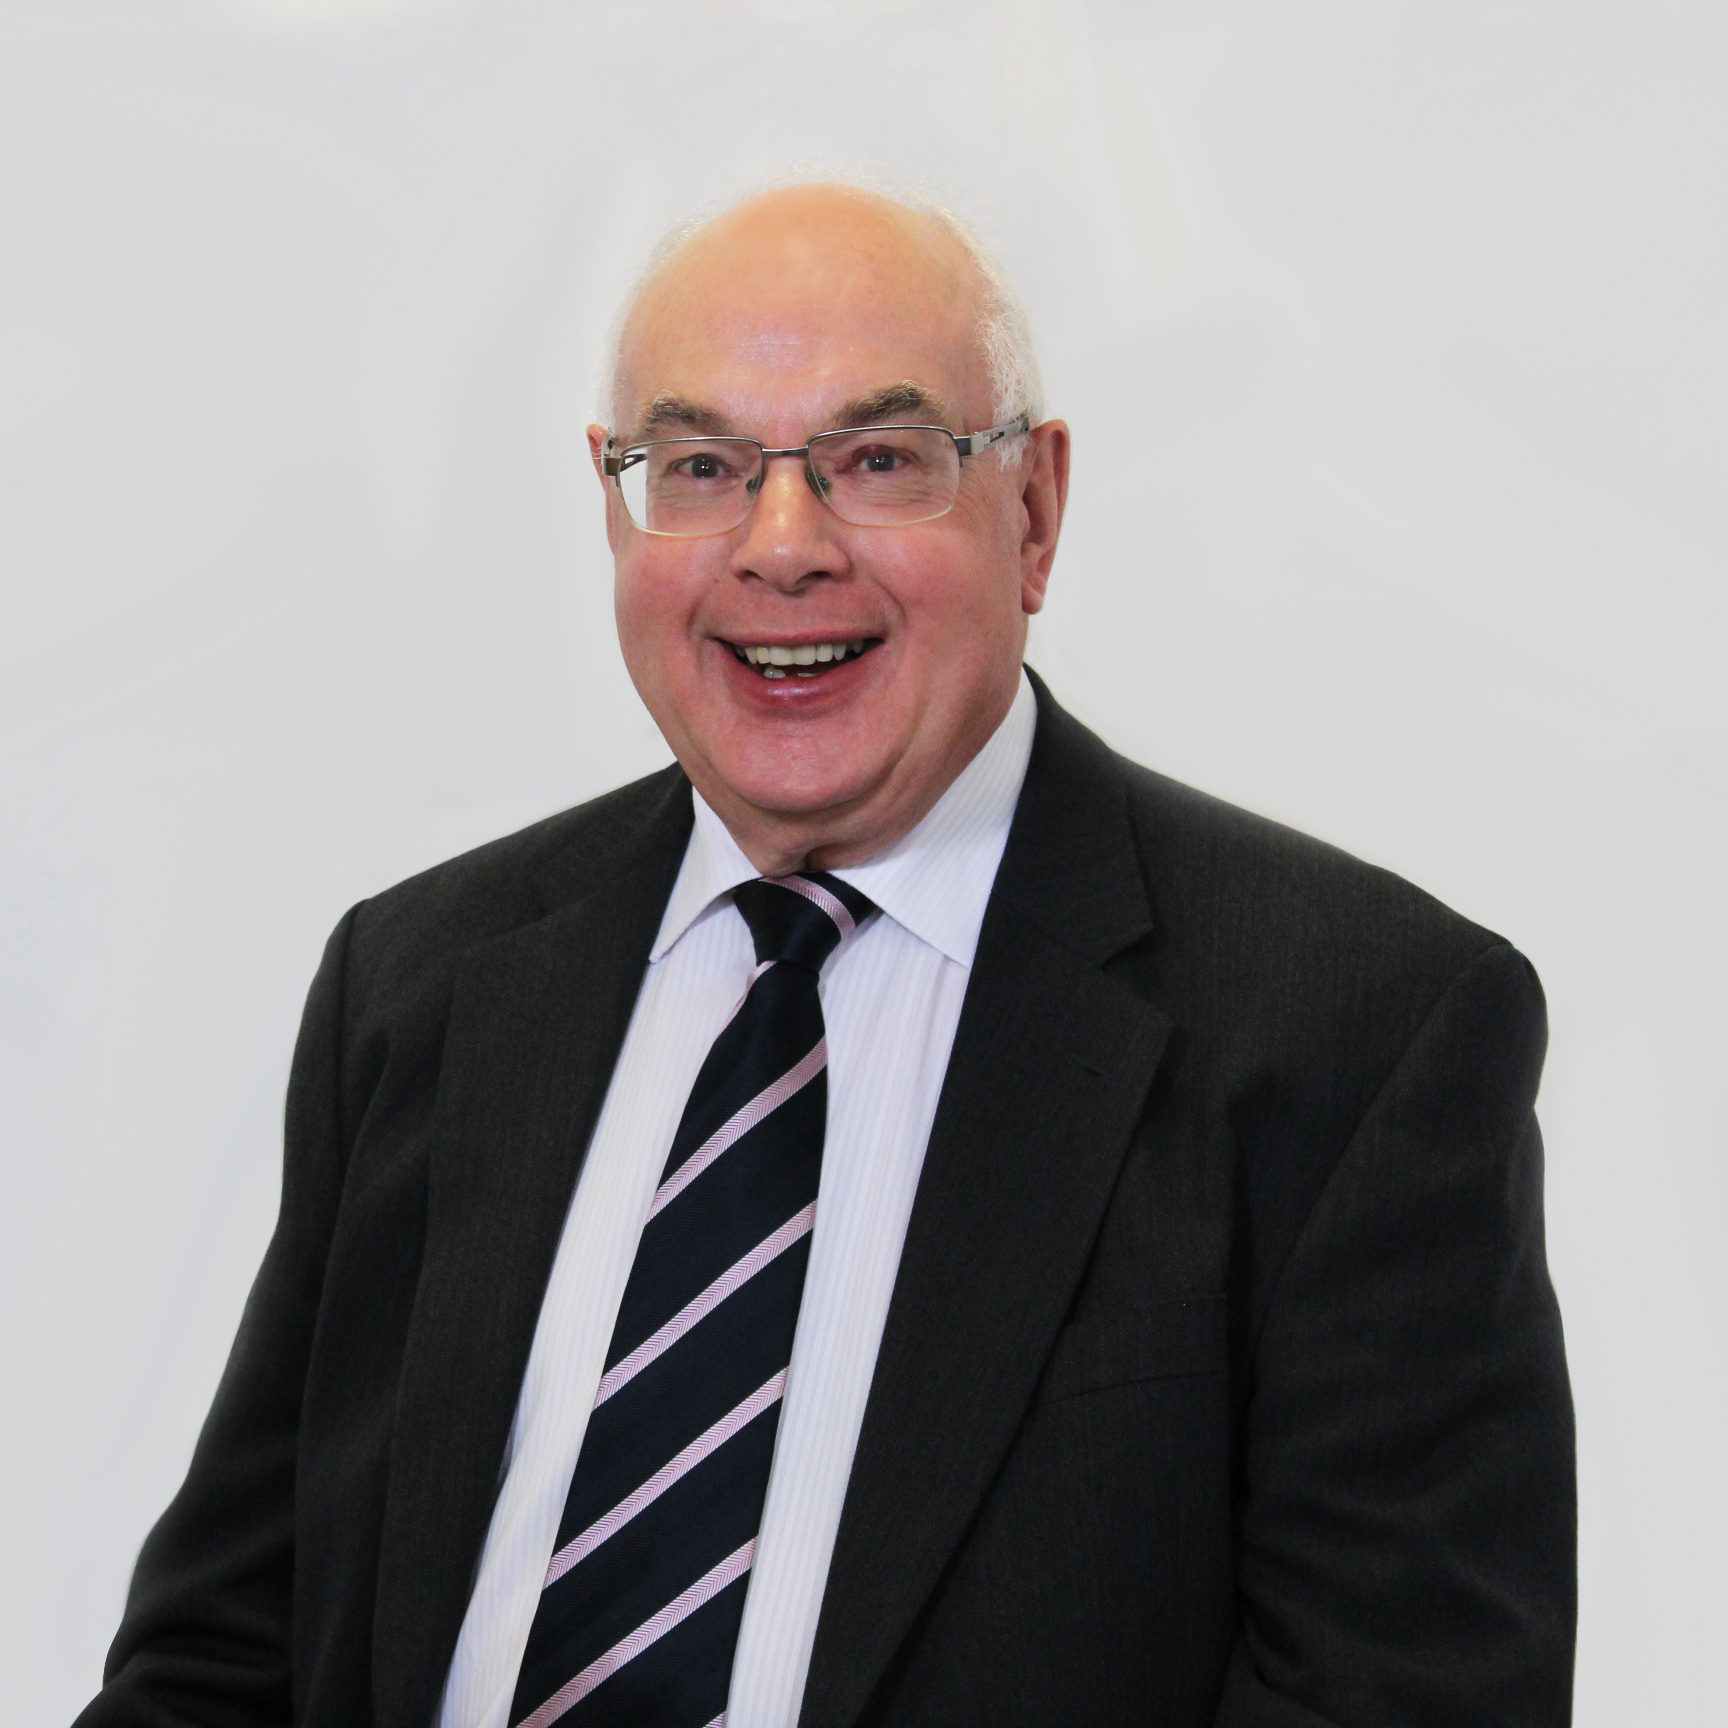 John Turton the Chairman